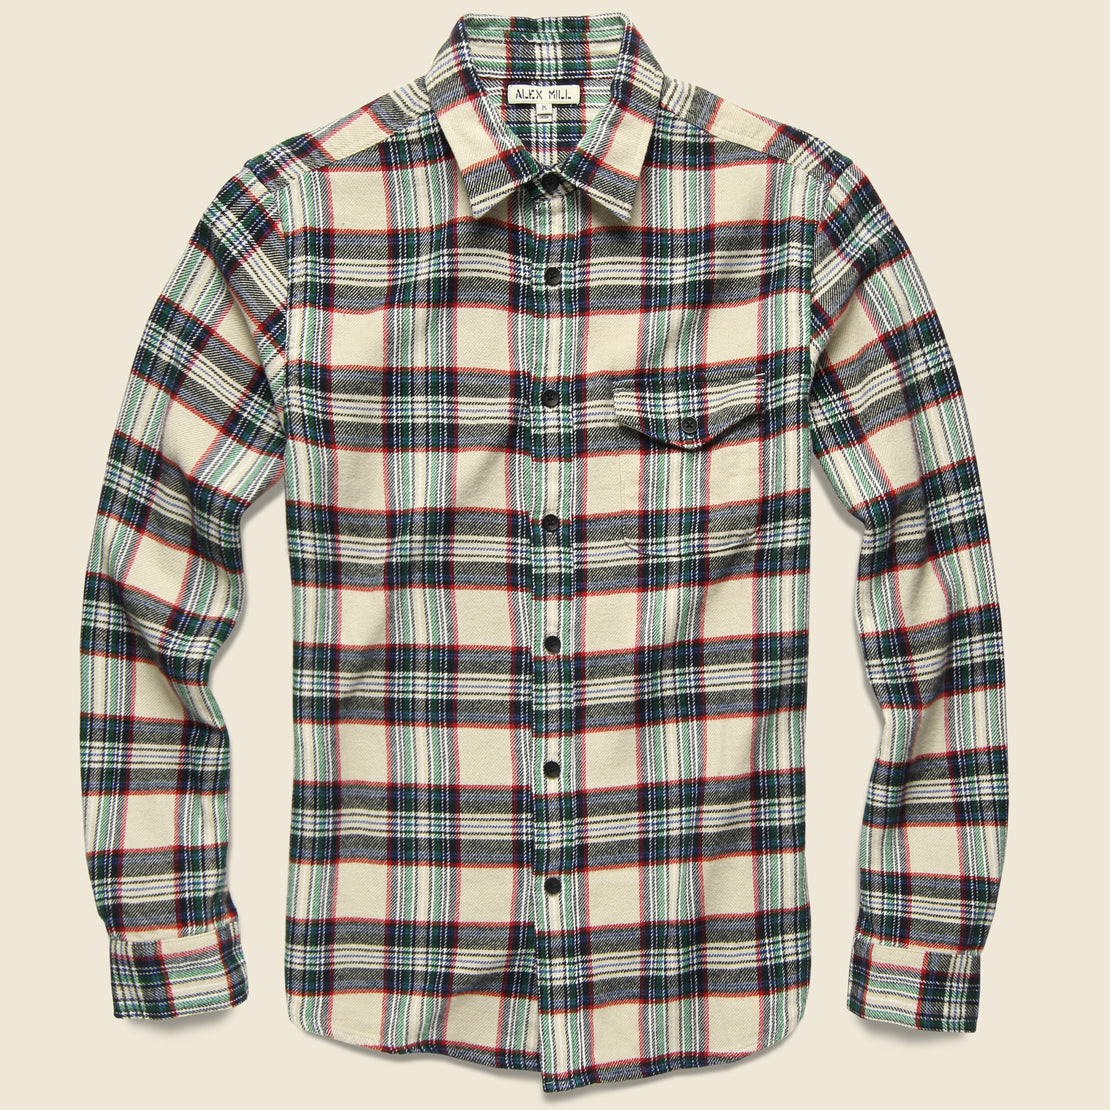 Alex Mill Plaid Patch & Flap Flannel - Ivory/Navy